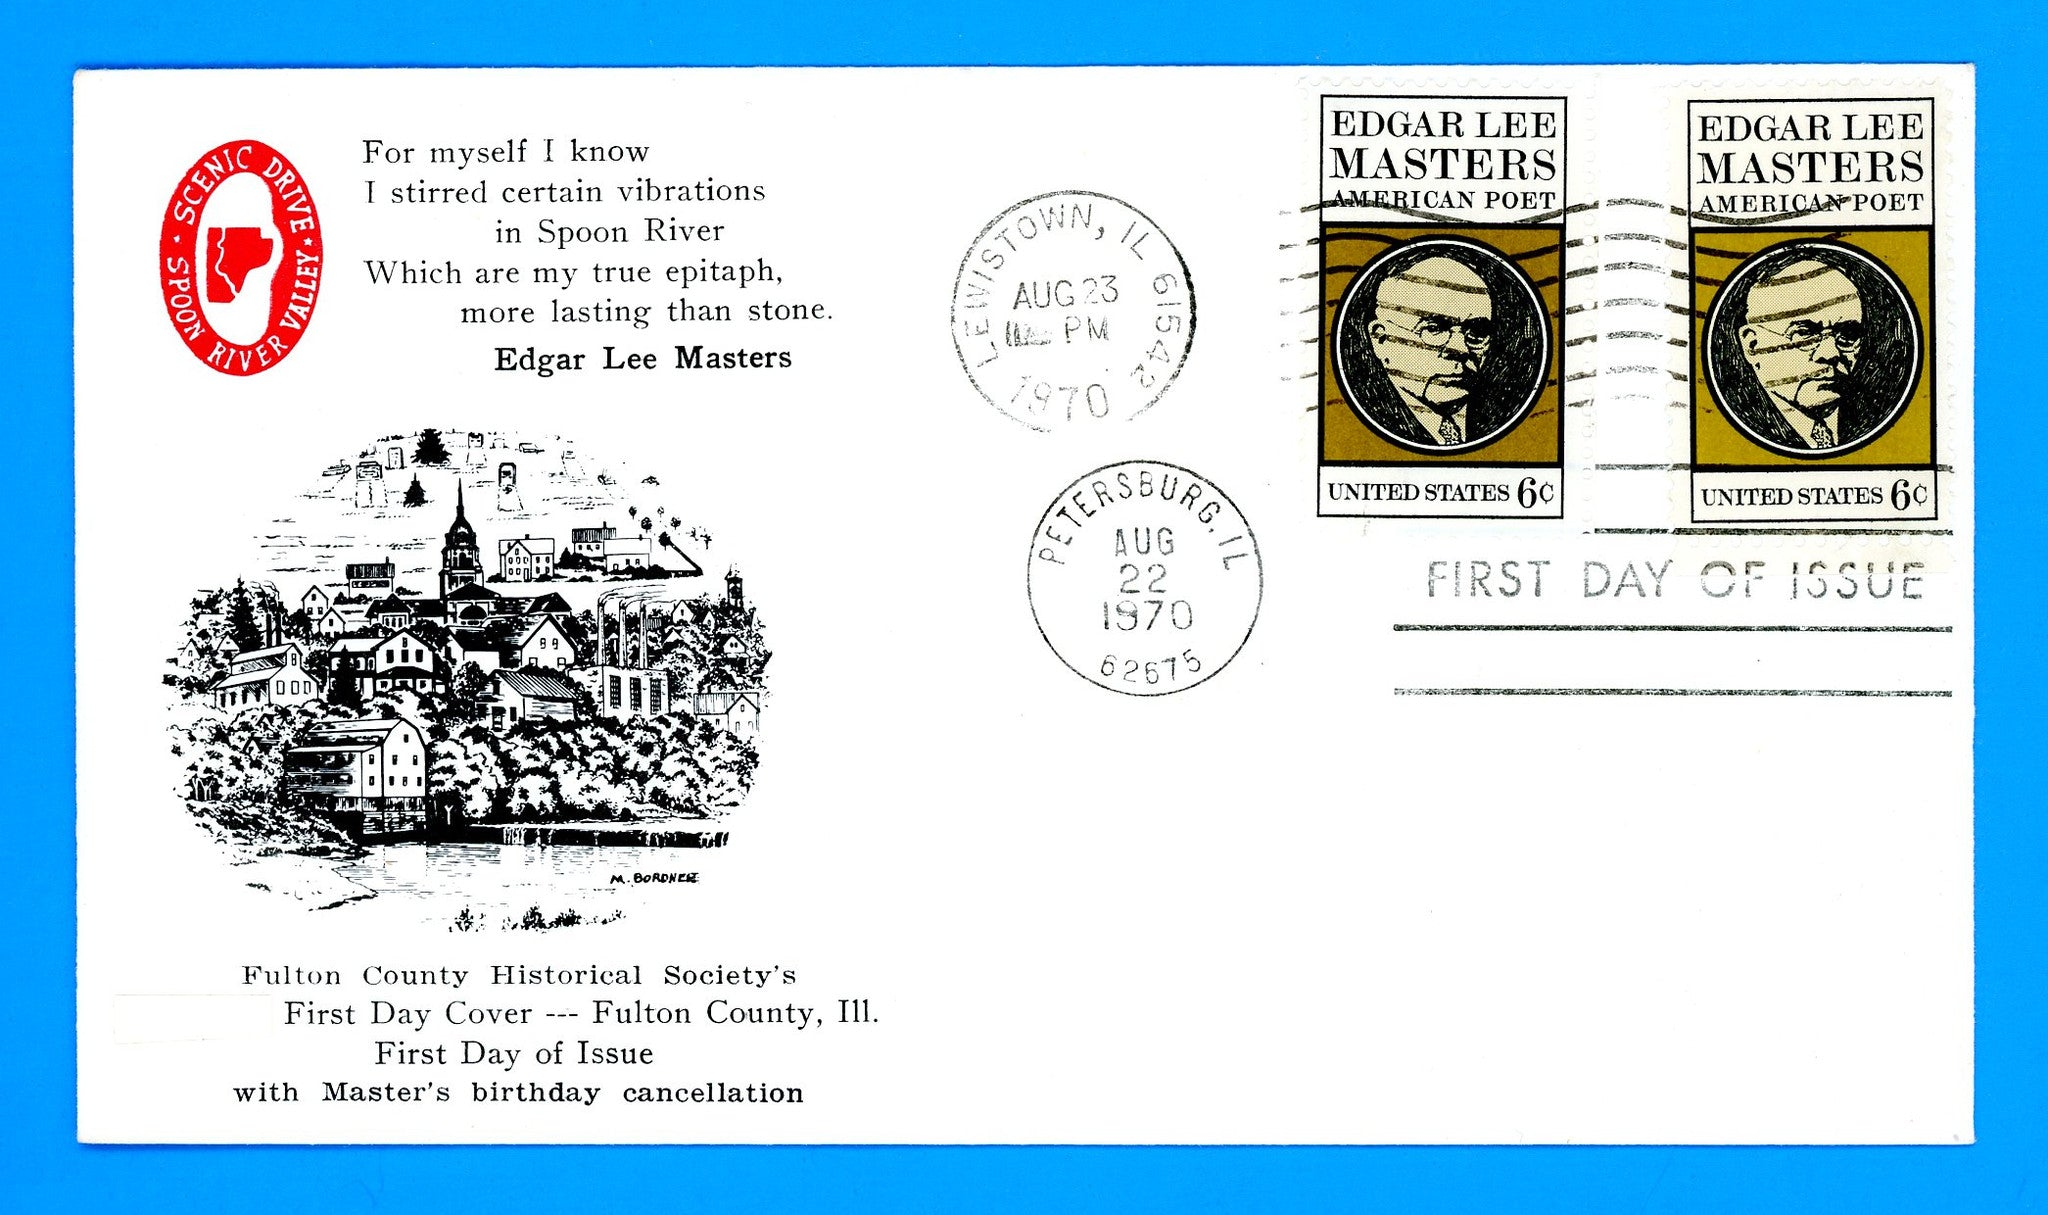 Scott 1405 Edgar Lee Masters, Poet First Day Cover by Fulton County Historical Society